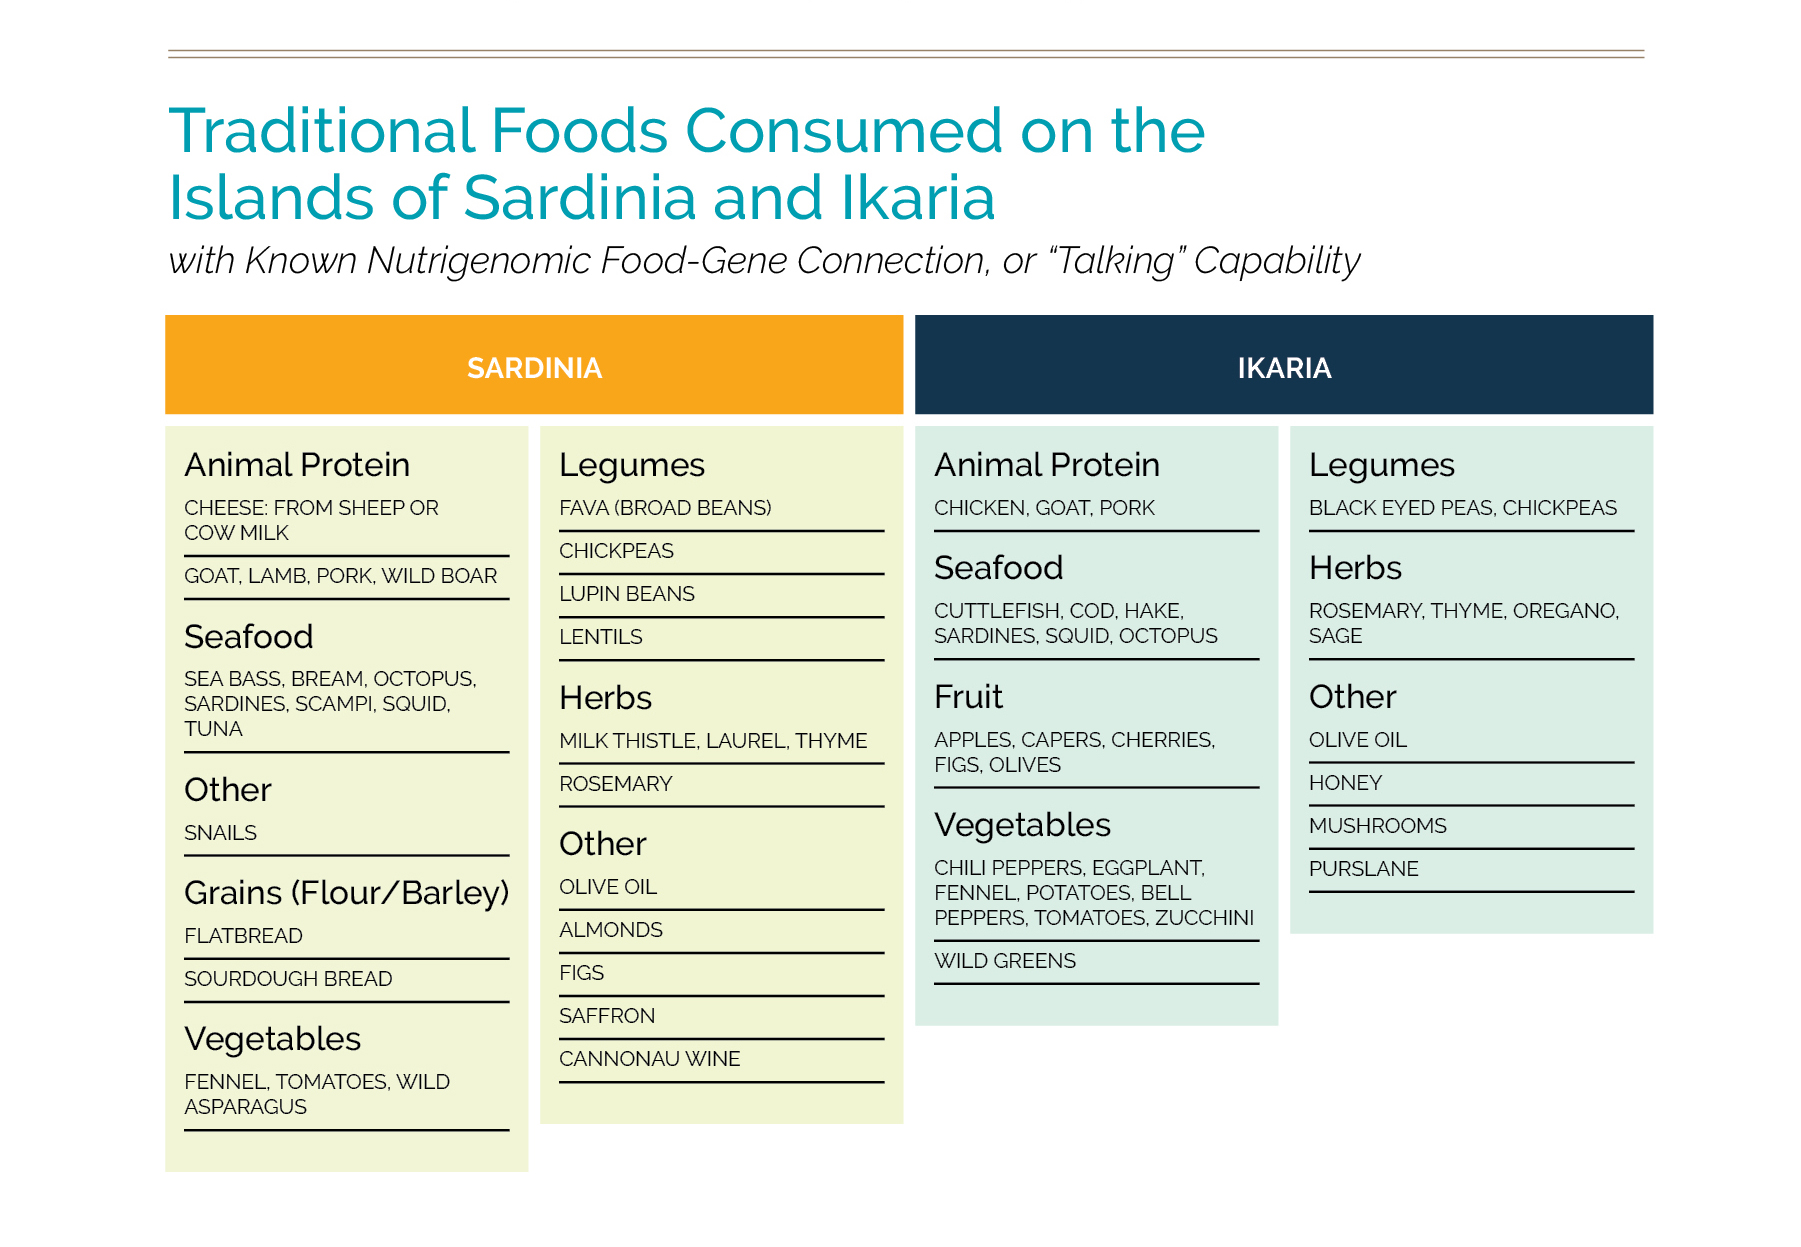 Traditional foods of ikaria and sardinia.jpg